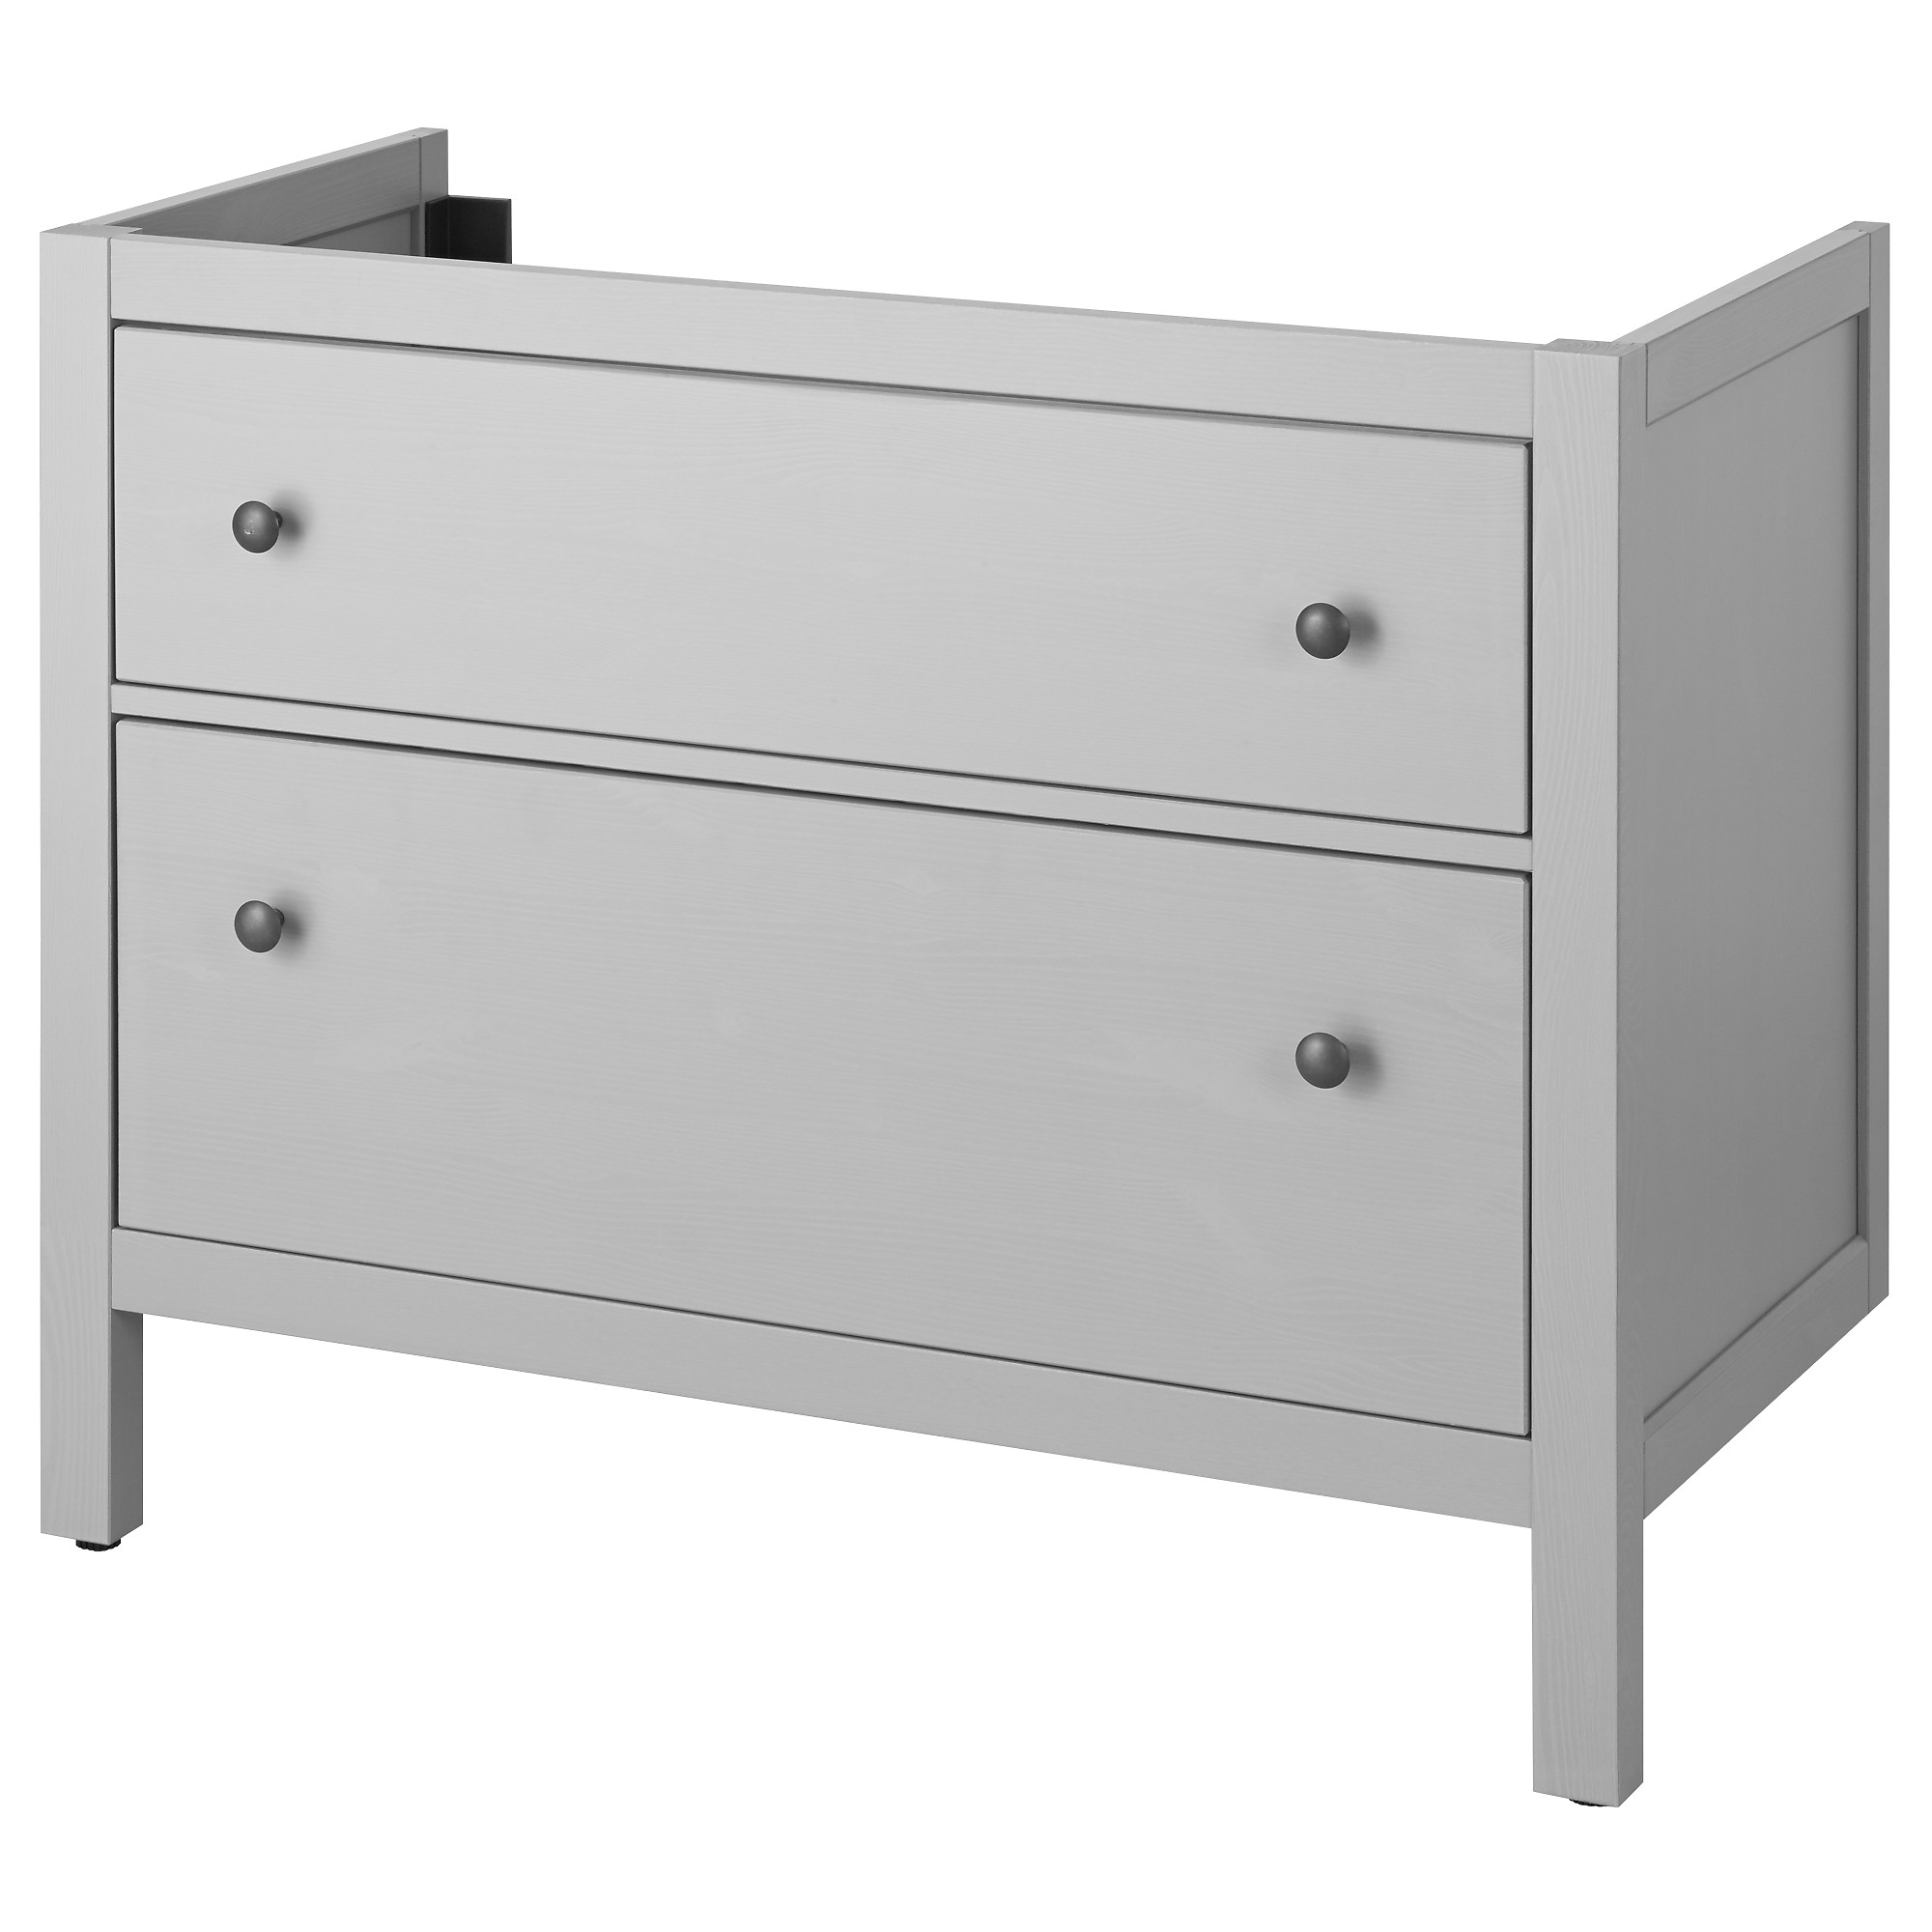 HEMNES Sink cabinet with 2 drawers - black-brown stain, 31 1/2x18 ...